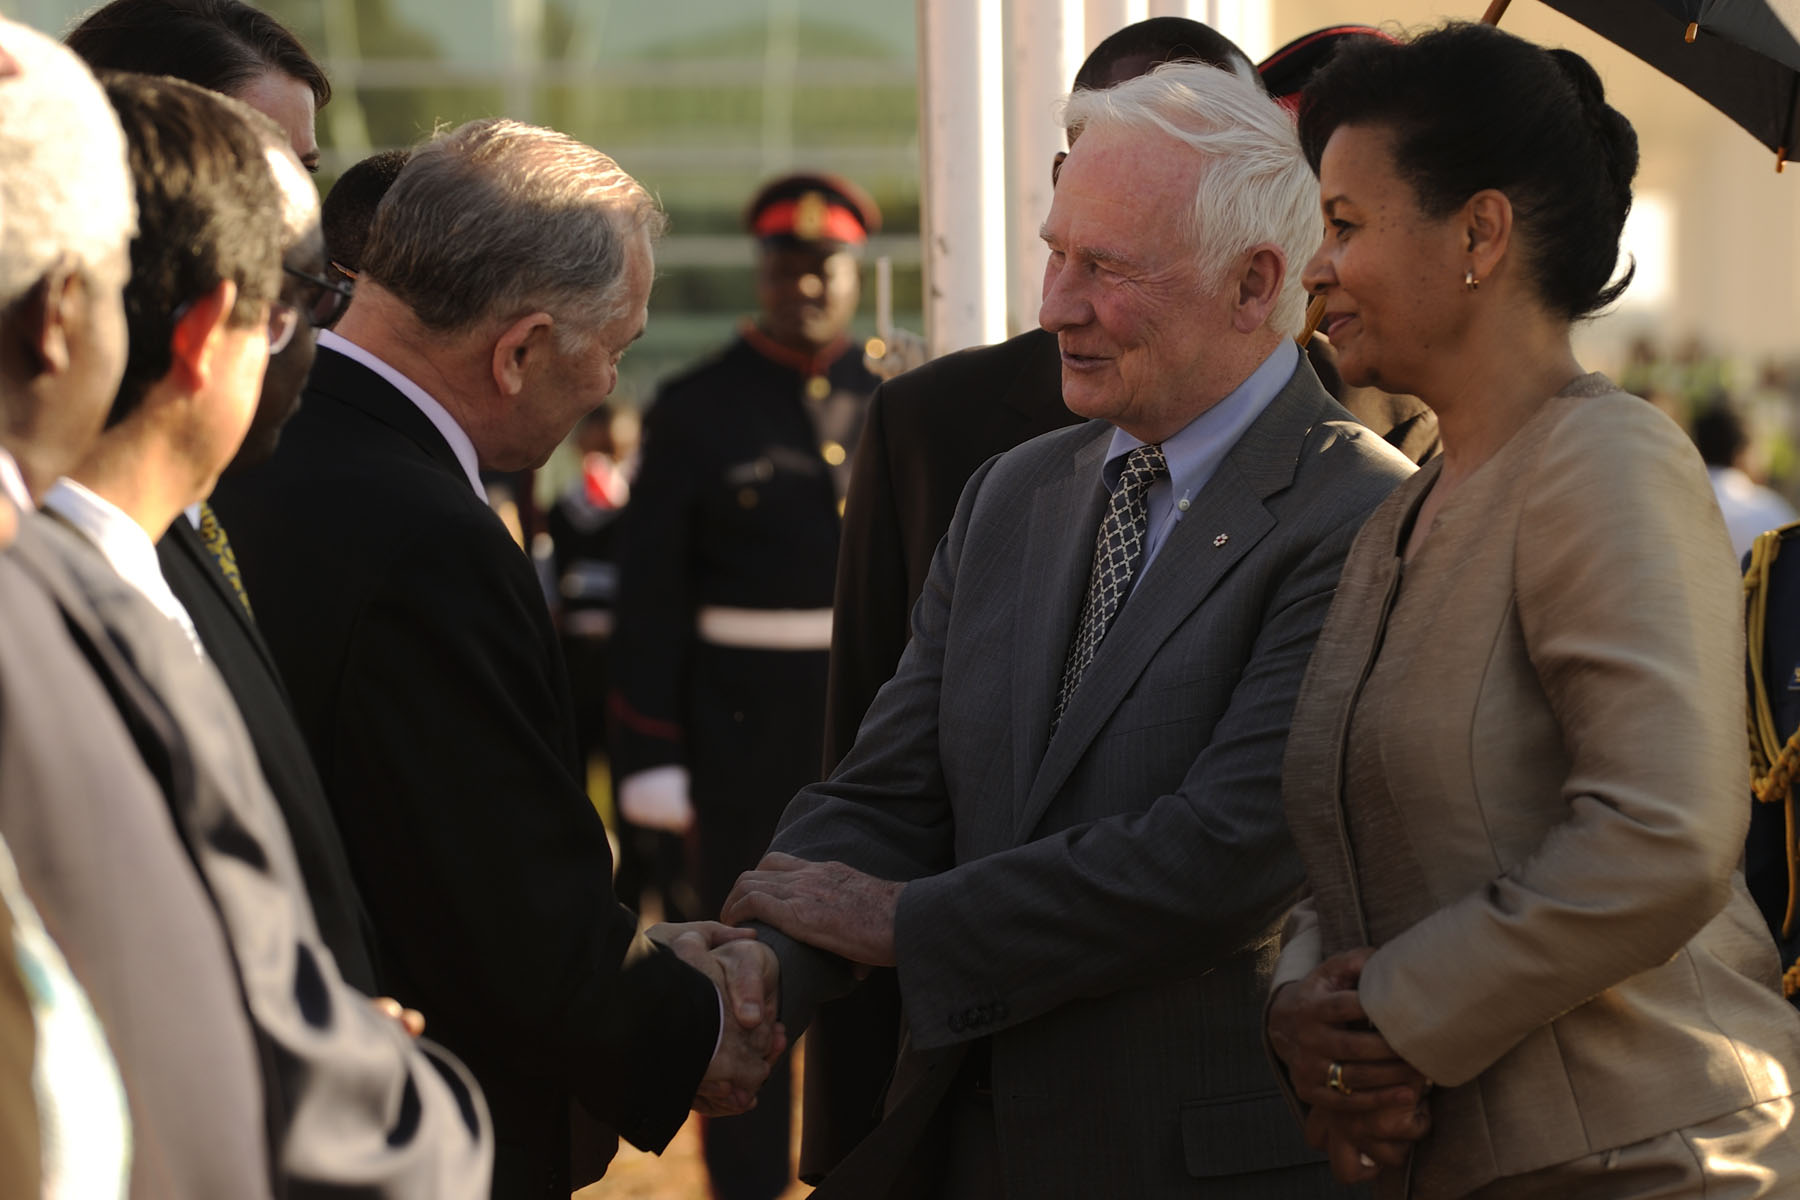 Visits abroad by a governor general play an important role in Canada's relations with other countries. They are highly valuable as they help broaden bilateral relations and exchanges among peoples.